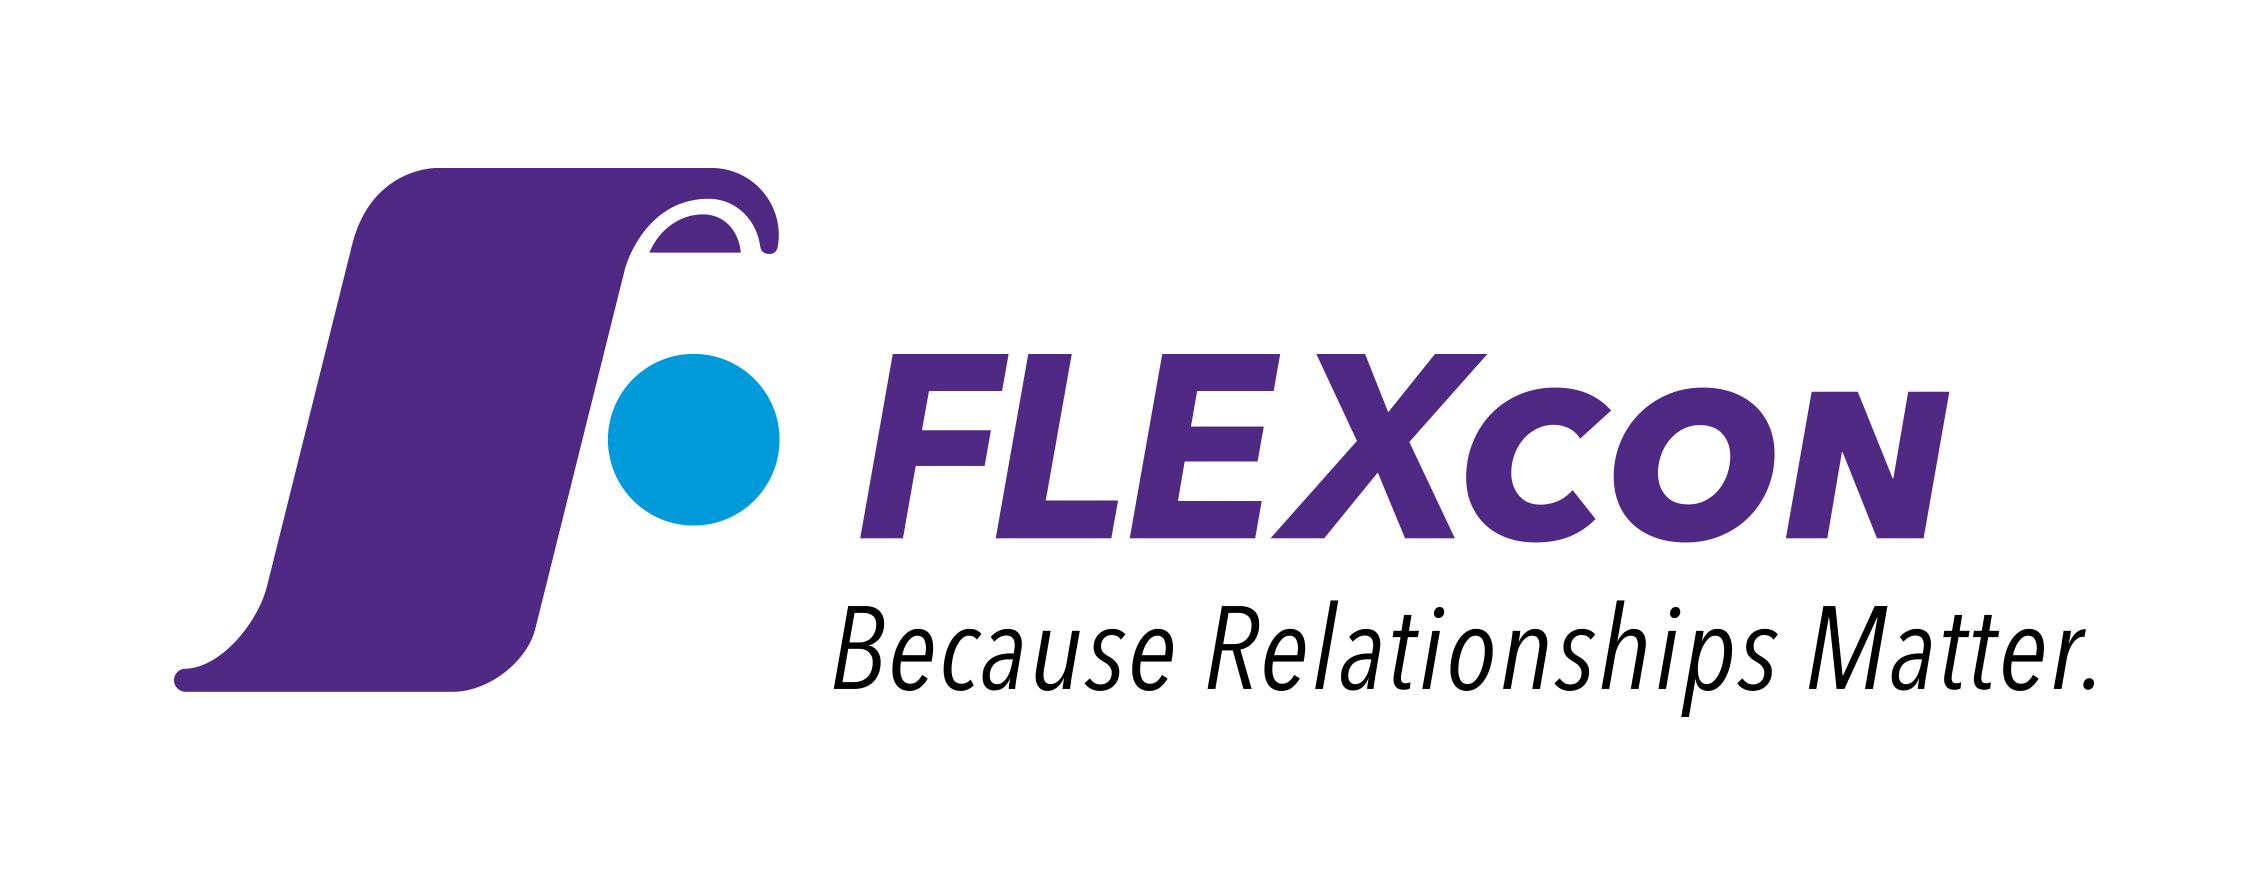 FLEXcon Company, Inc. in Spencer, MA. Corporate headquarters & coated & laminated films & adhesives for printers & fabricators, engineers & designers & developing products for existing & emerging markets.